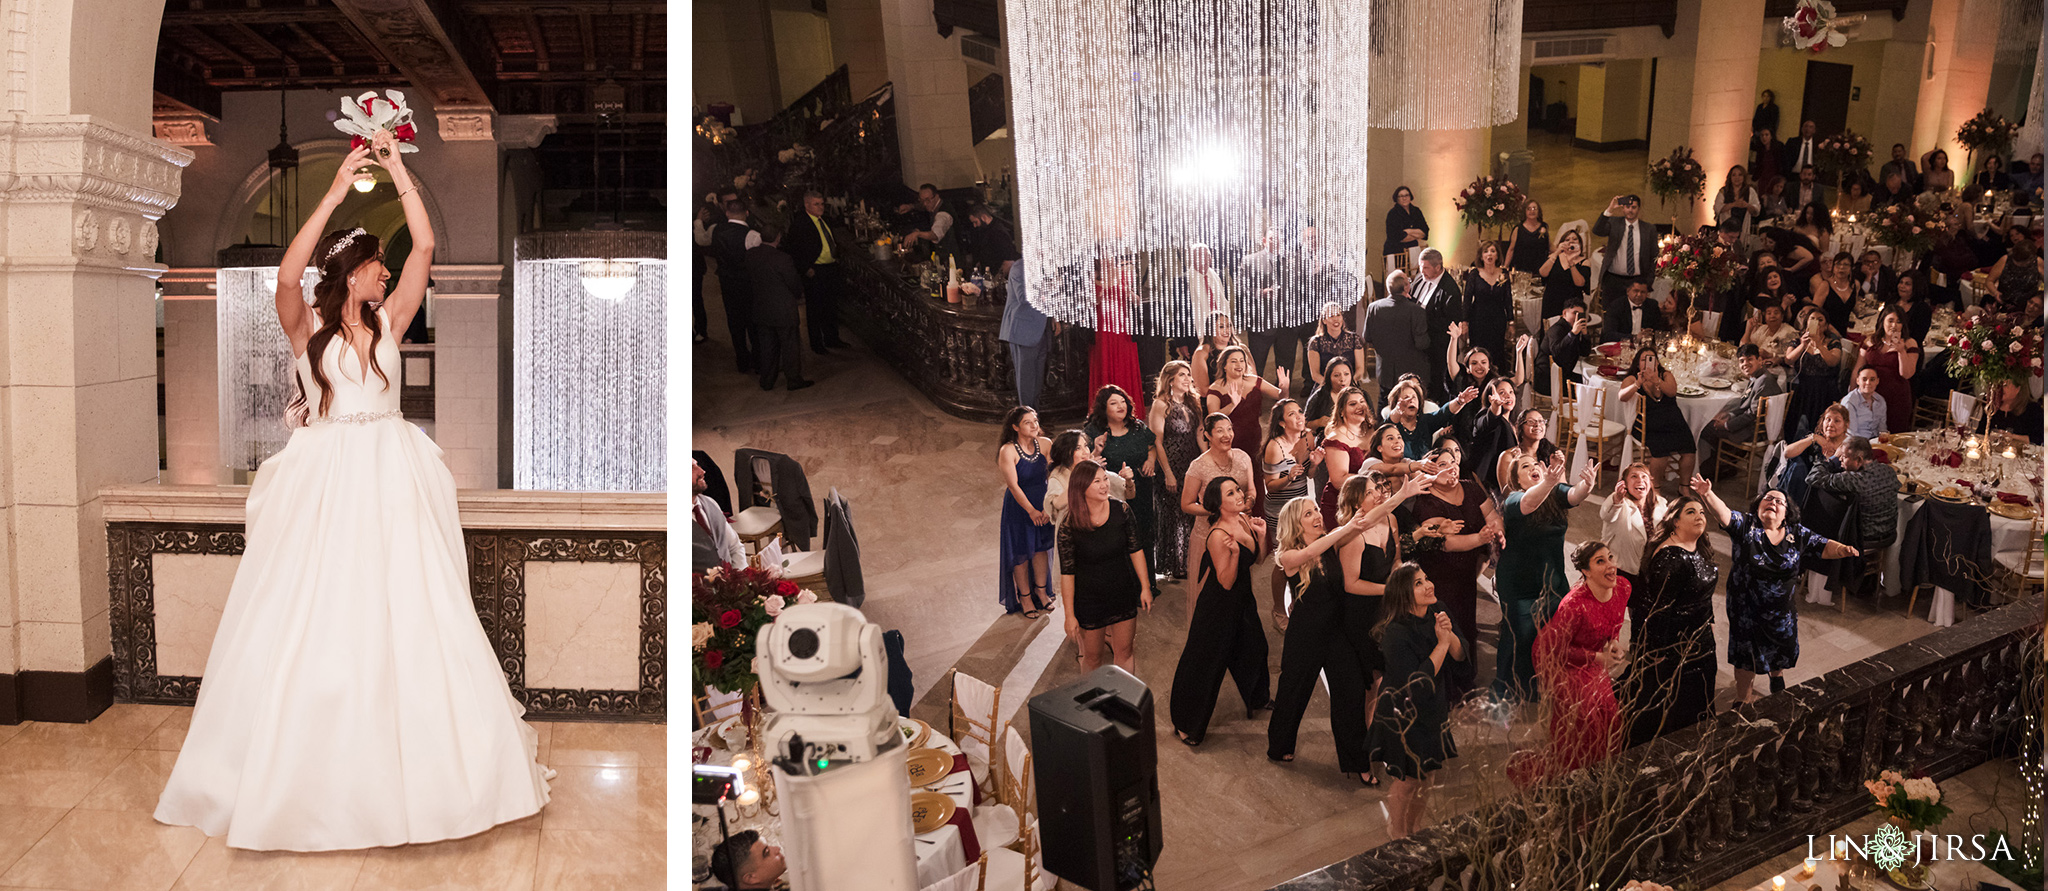 30 The Majestic Downtown Los Angeles Wedding Photography